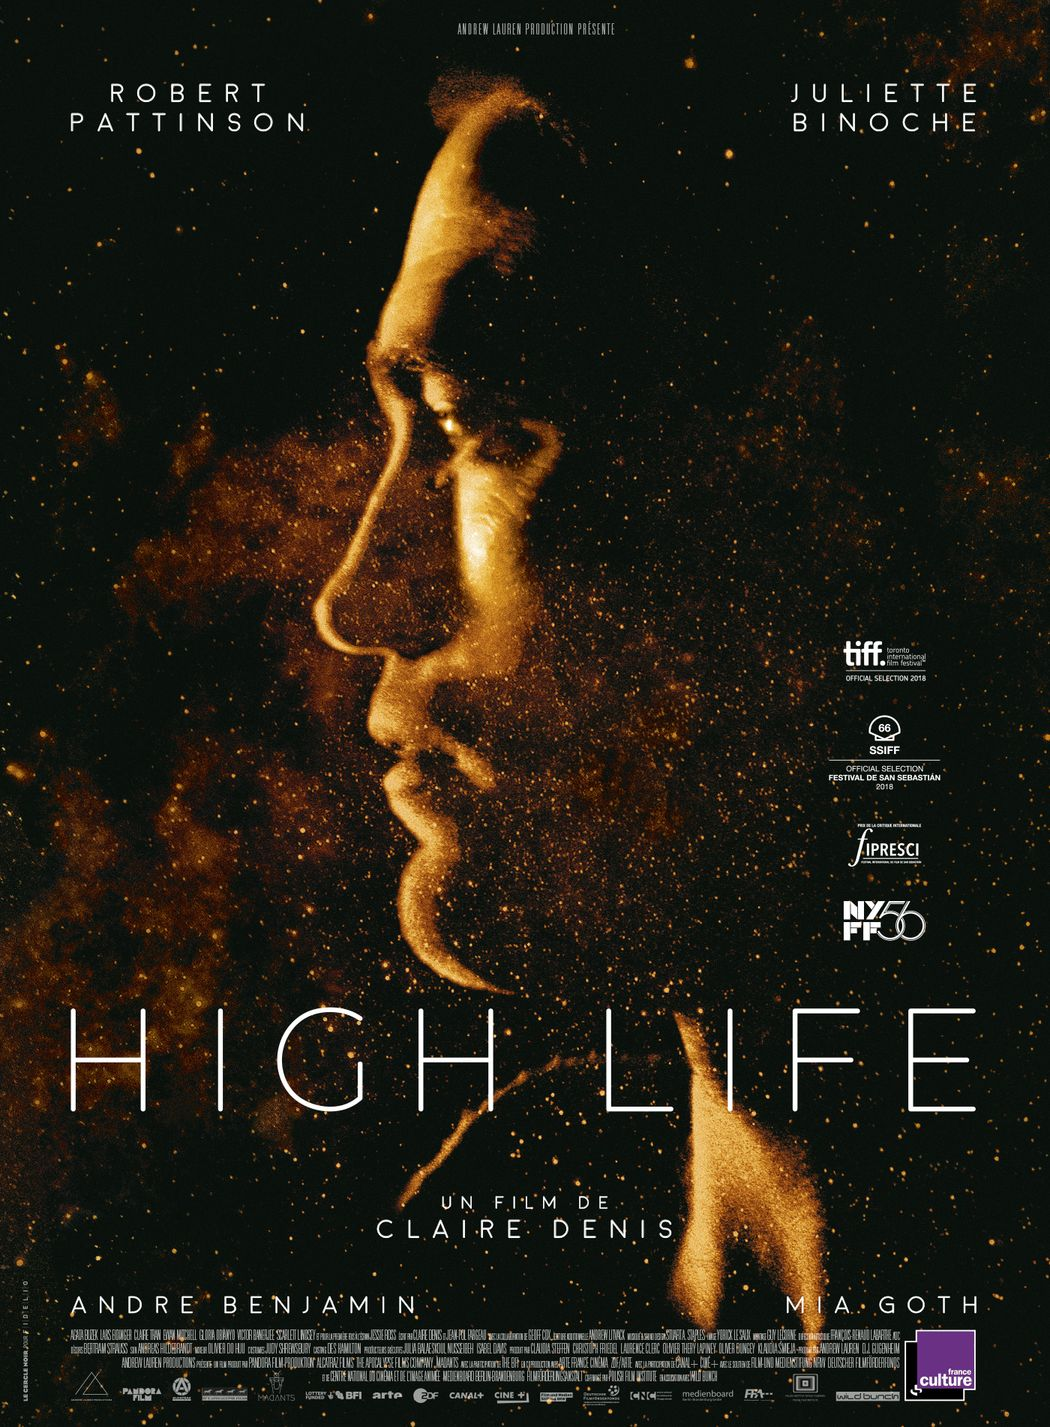 French Film Festival 19': Movie poster of High Life.